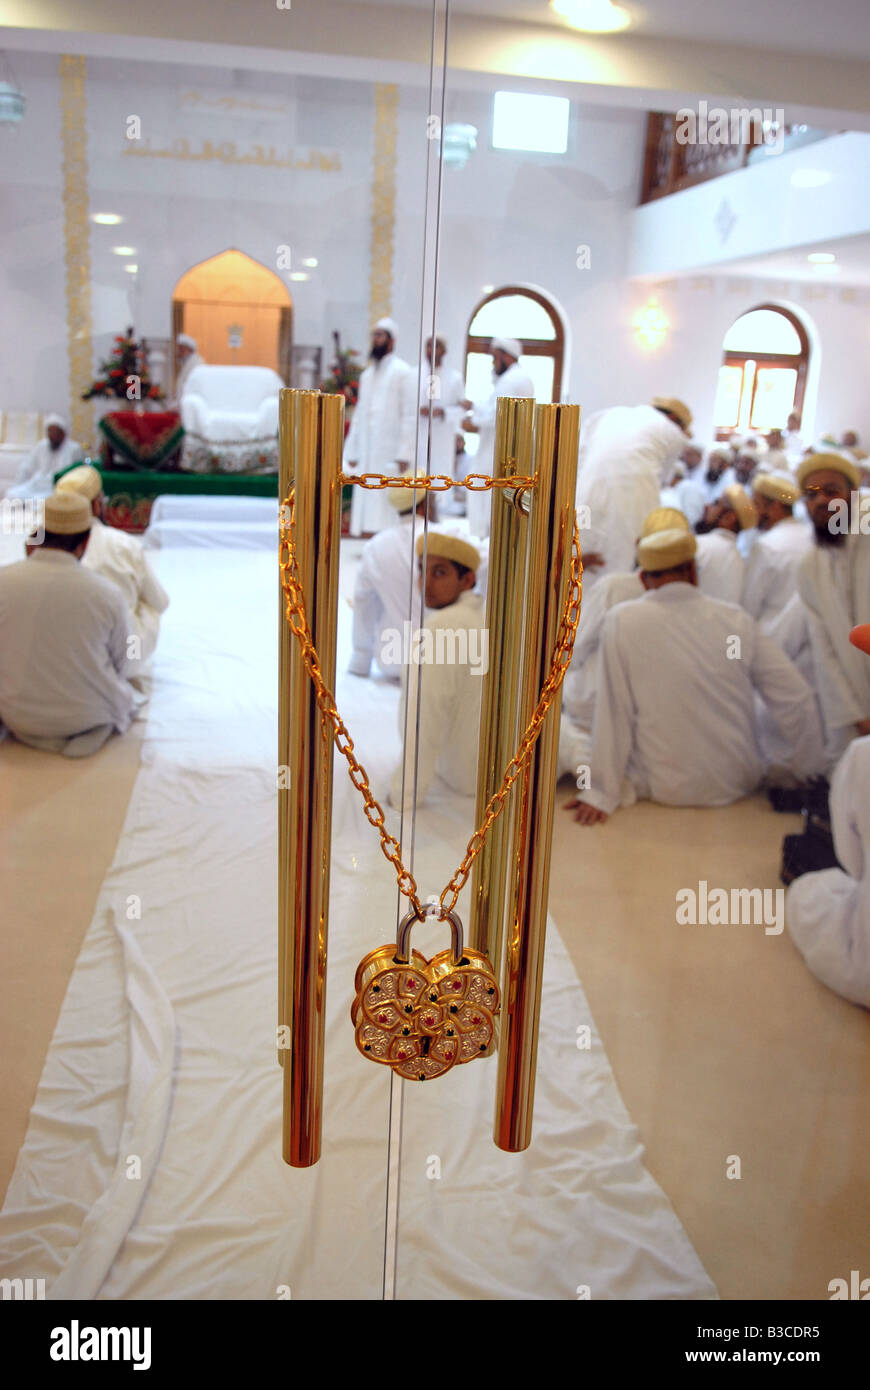 HH Syedna Mohammed Burhanuddin leader of the Shia Fatimad Tayyibi branch of Islam opens new mosque in Manchester - Stock Image